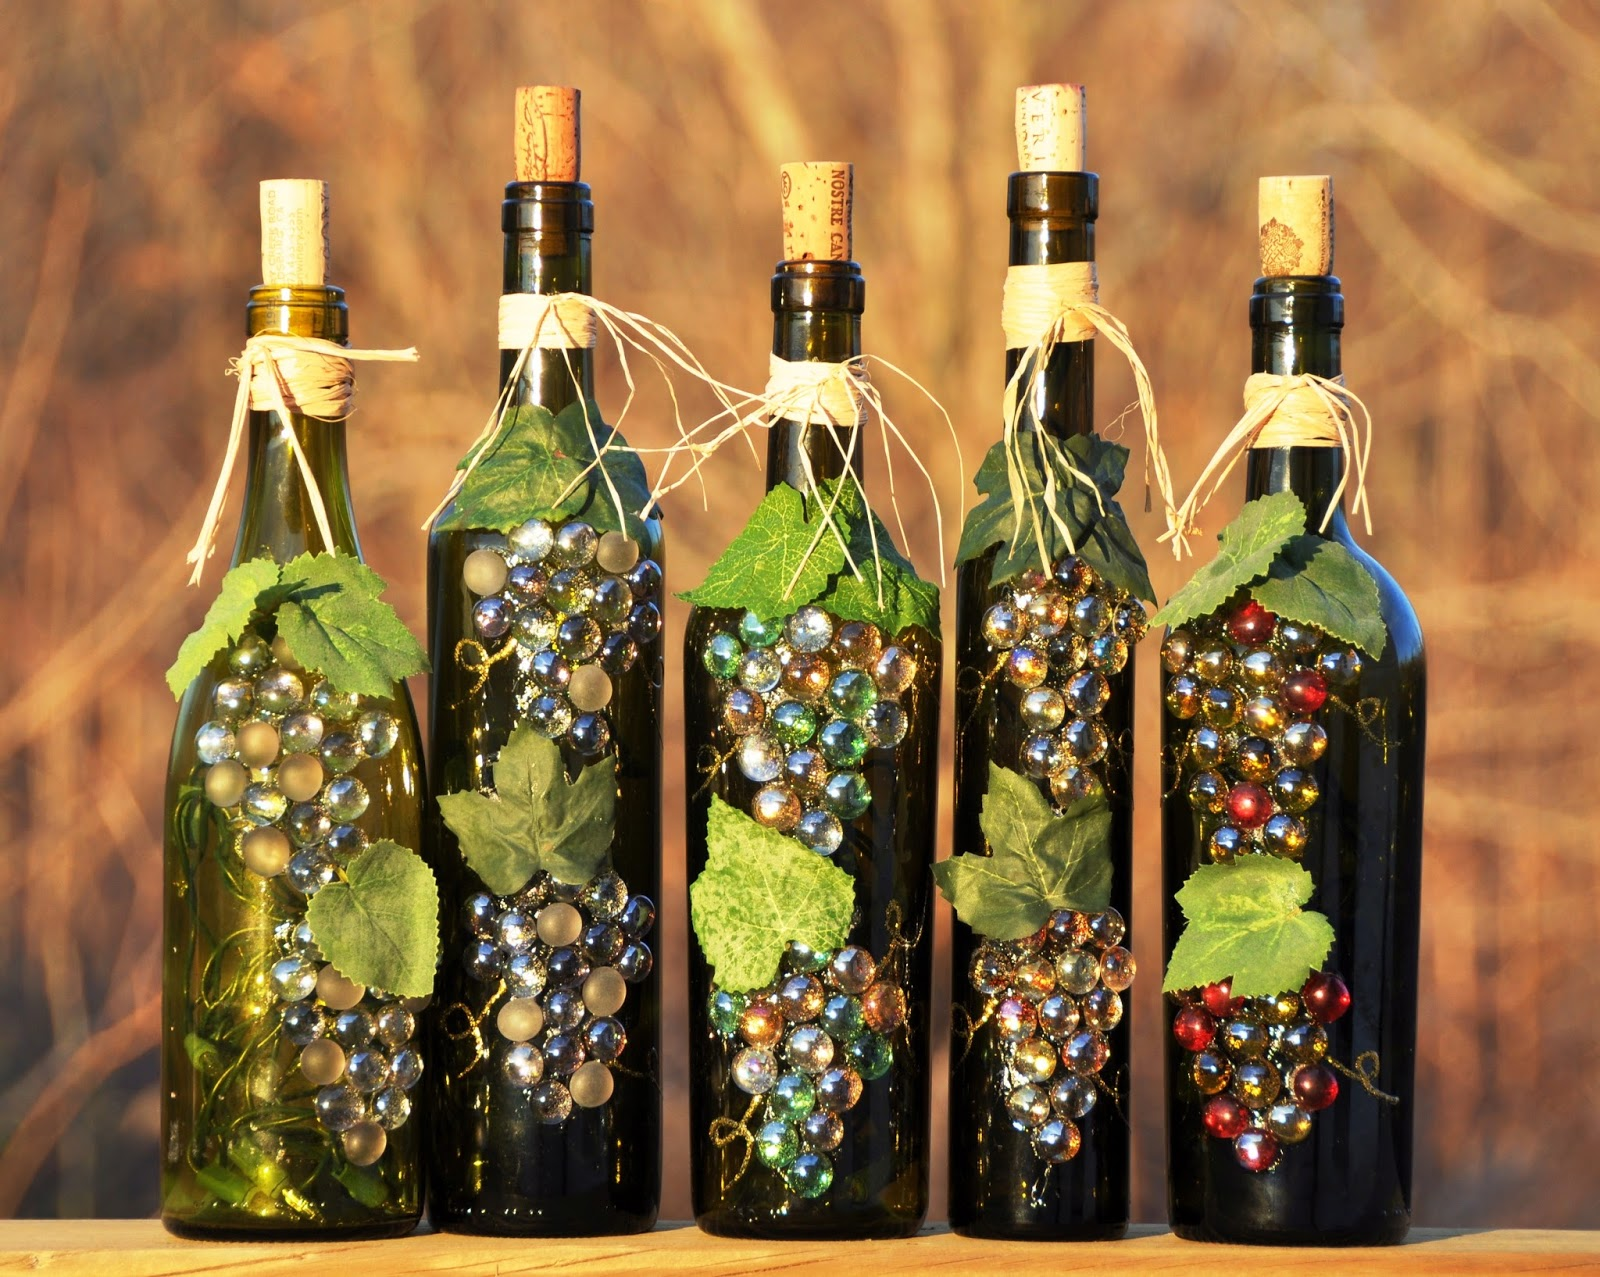 ... wine bottle in your home you can re use those empty wine bottle into a